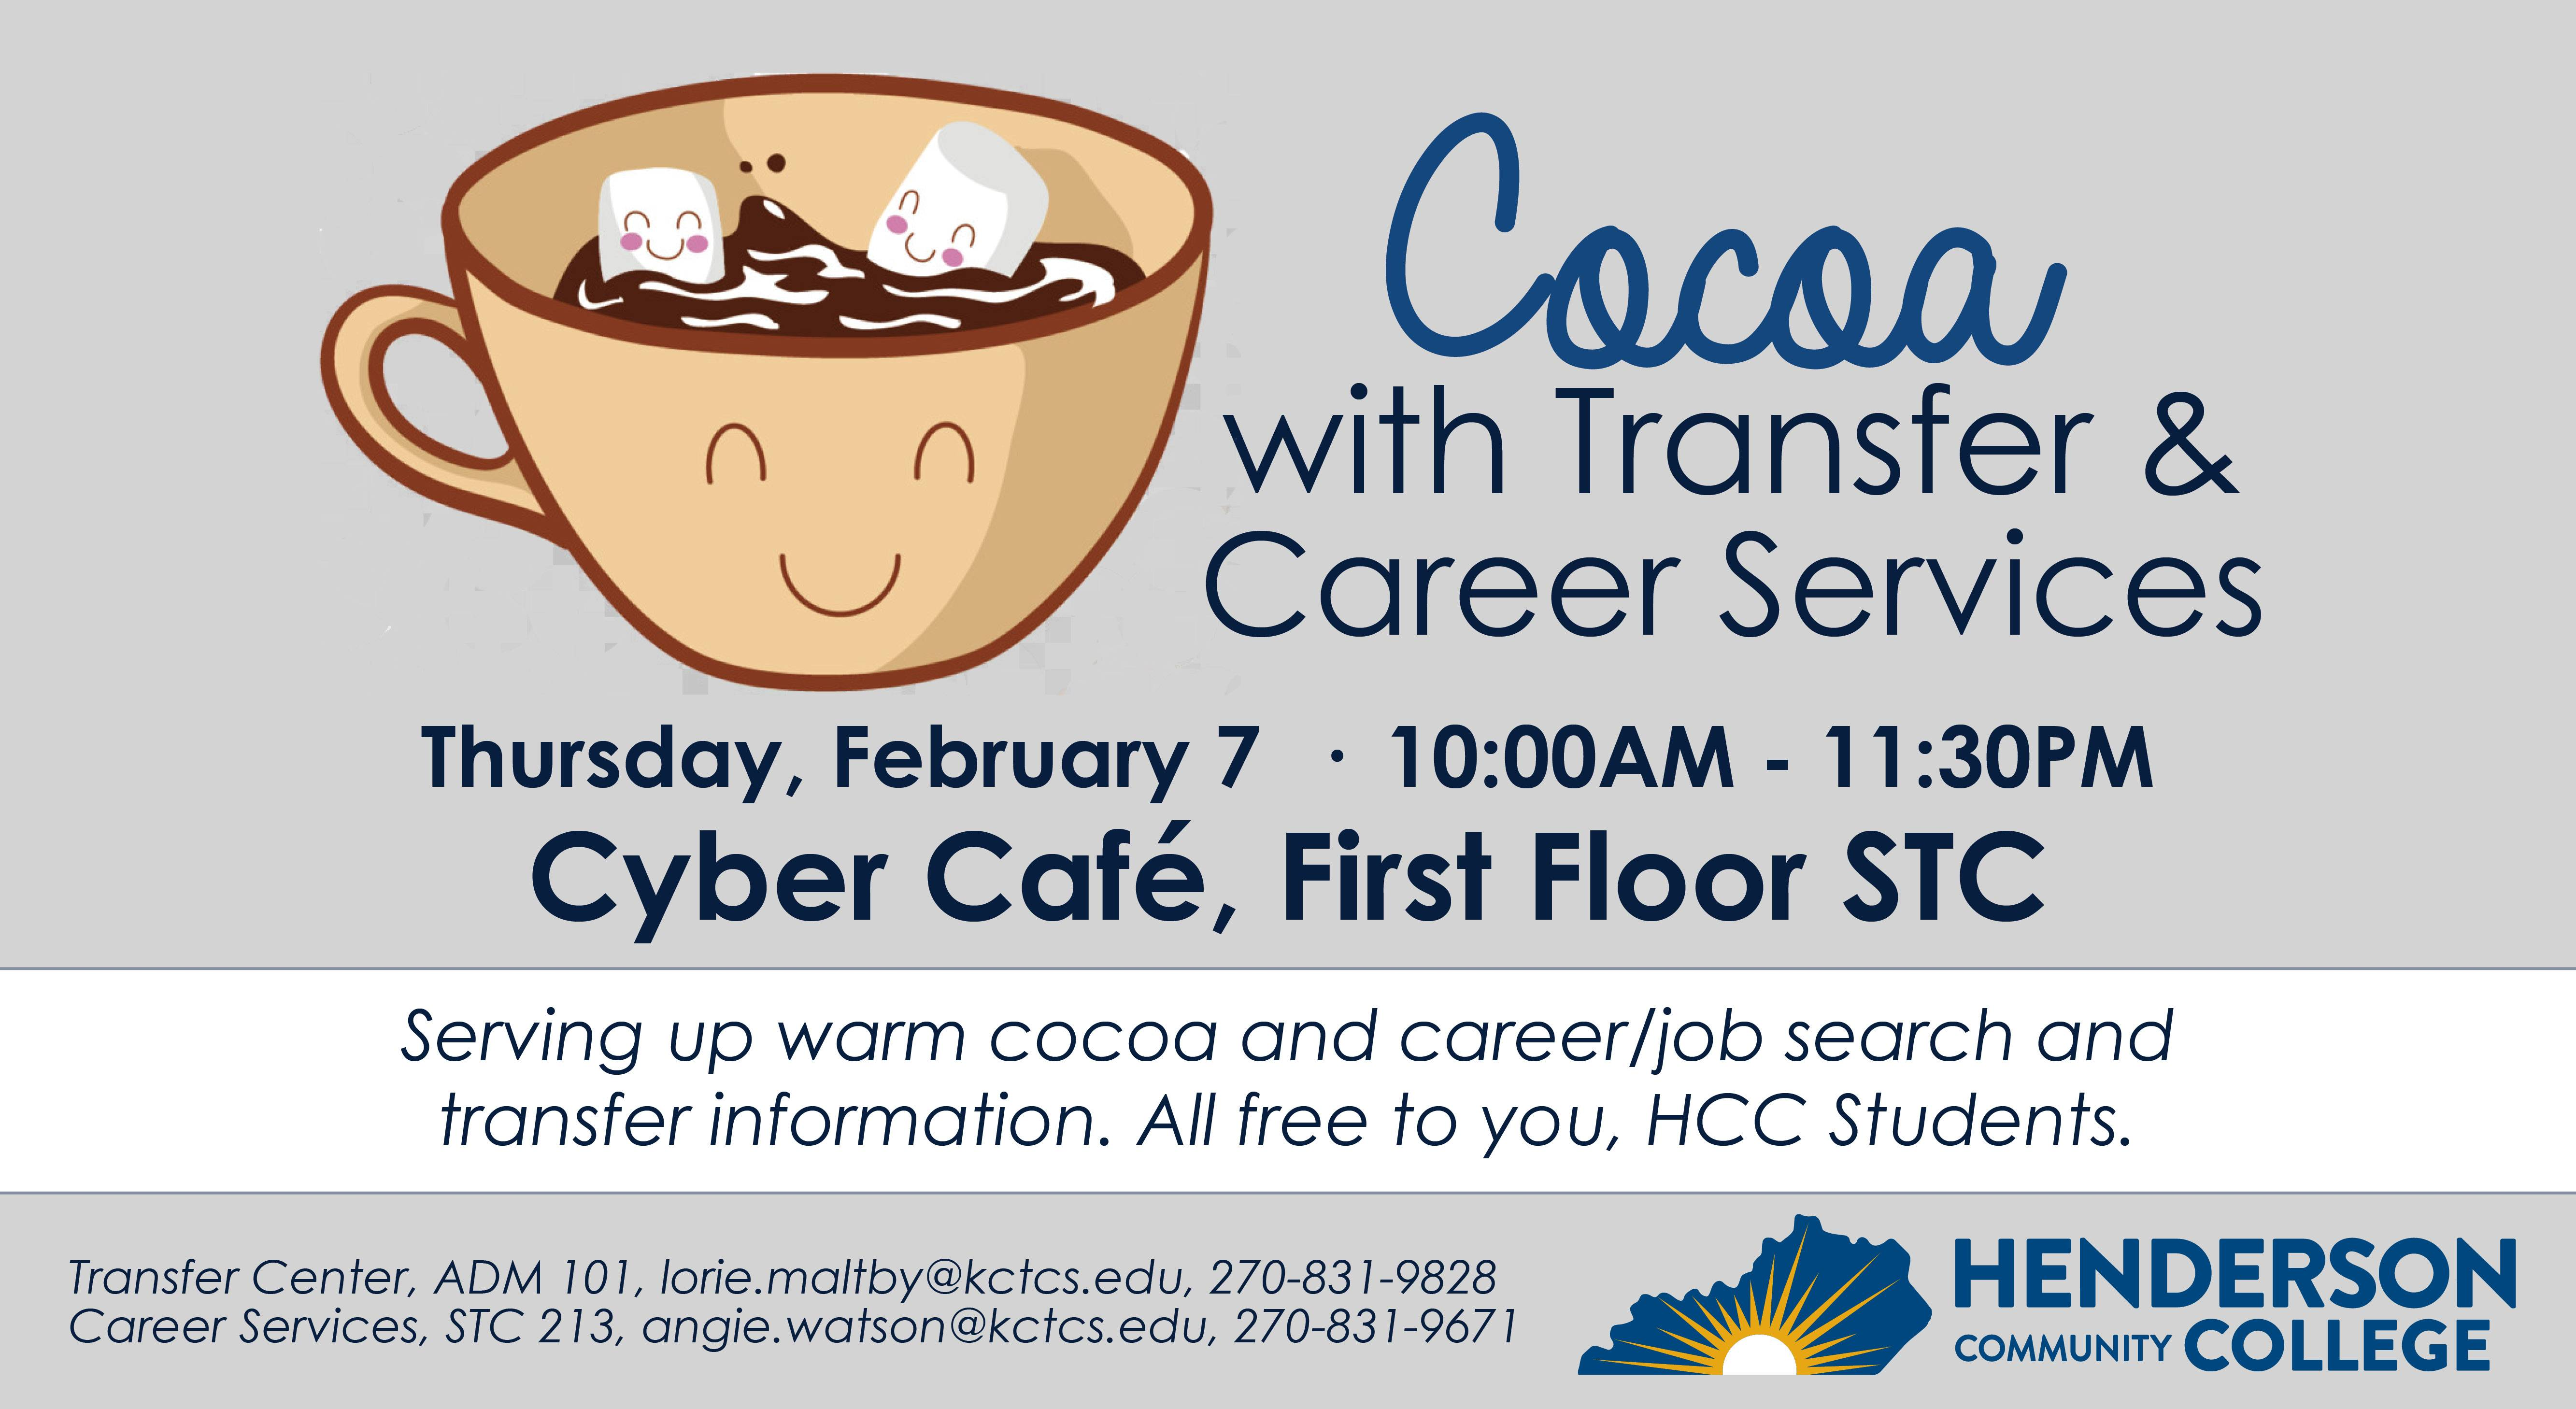 Cocoa with Transfer/Career Services